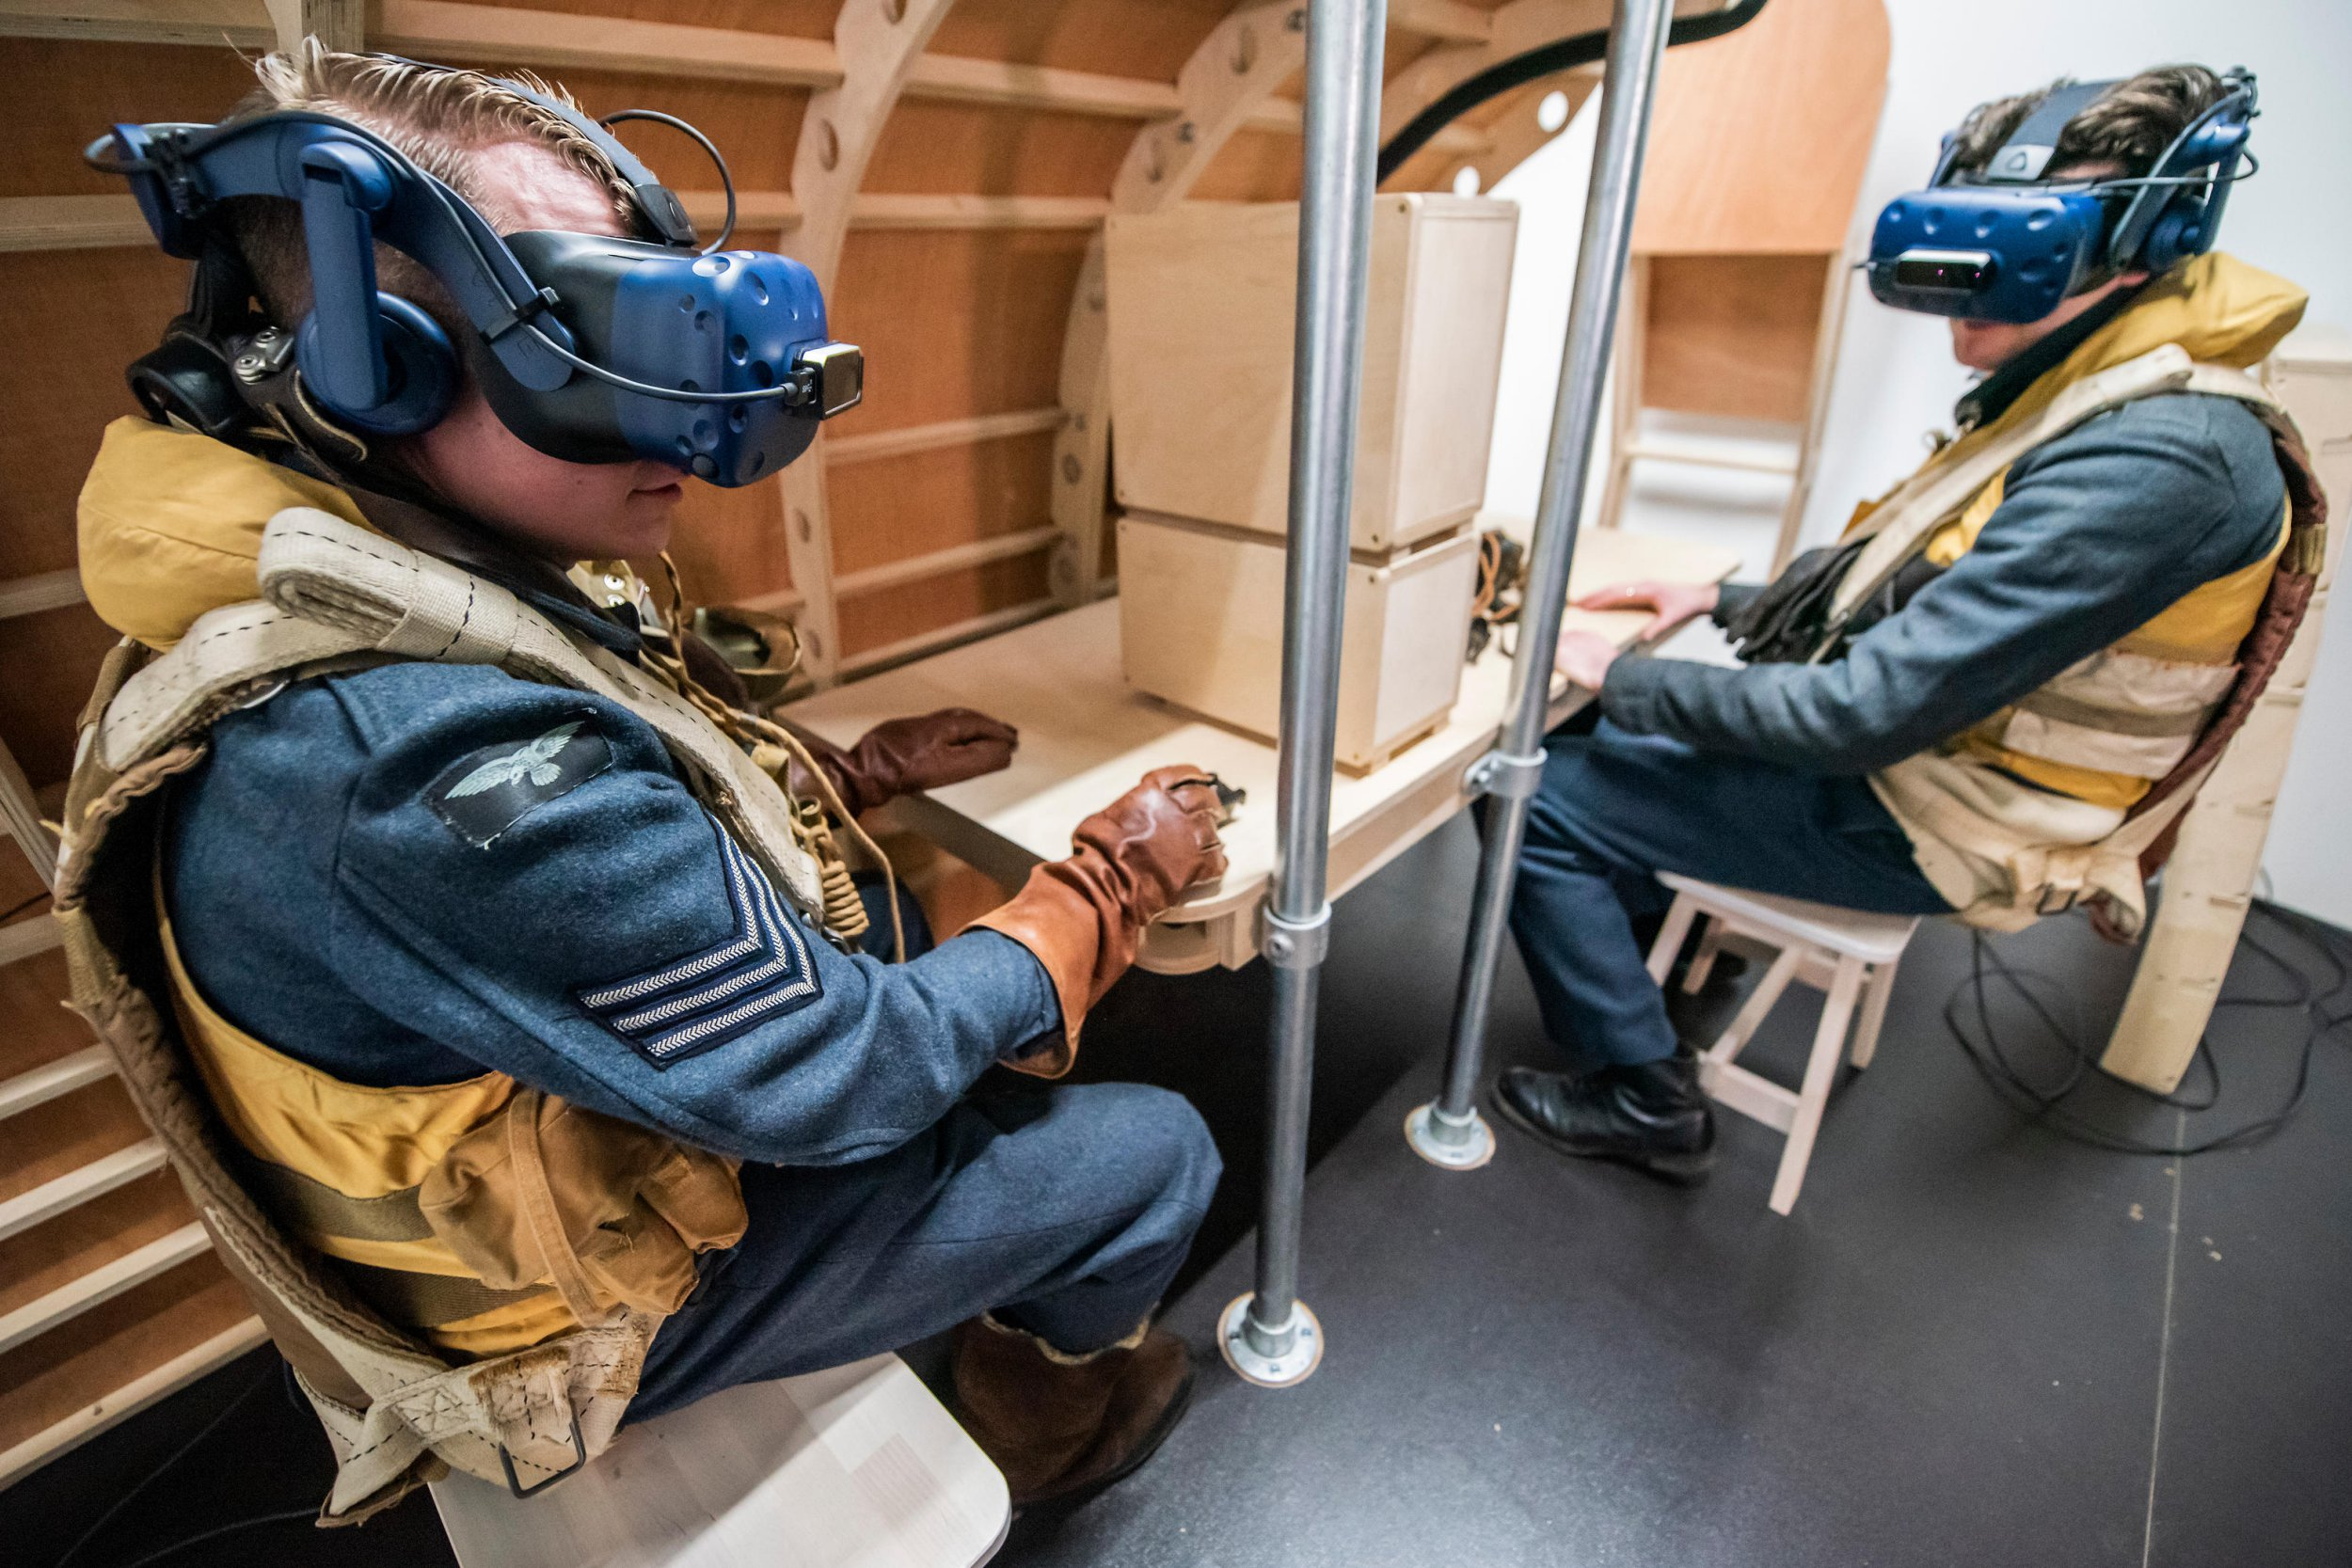 Alamy Live News. RYHMET London, UK. 14th March, 2019. Re-enactors have a go at the VR experience - Immersive Histories: Dambusters Virtual Reality Experience. An opportunity to step back in time to the early hours of 17 May 1943 and on board Avro Lancaster G-George to join the Dambusters on their legendary mission. Using the latest virtual reality and haptic technology, in conjunction with a physical 1:1 recreation of the interior of the iconic Avro Lancaster bomber. Credit: Guy Bell/Alamy Live News Credit: Guy Bell/Alamy Live News This is an Alamy Live News image and may not be part of your current Alamy deal . If you are unsure, please contact our sales team to check.